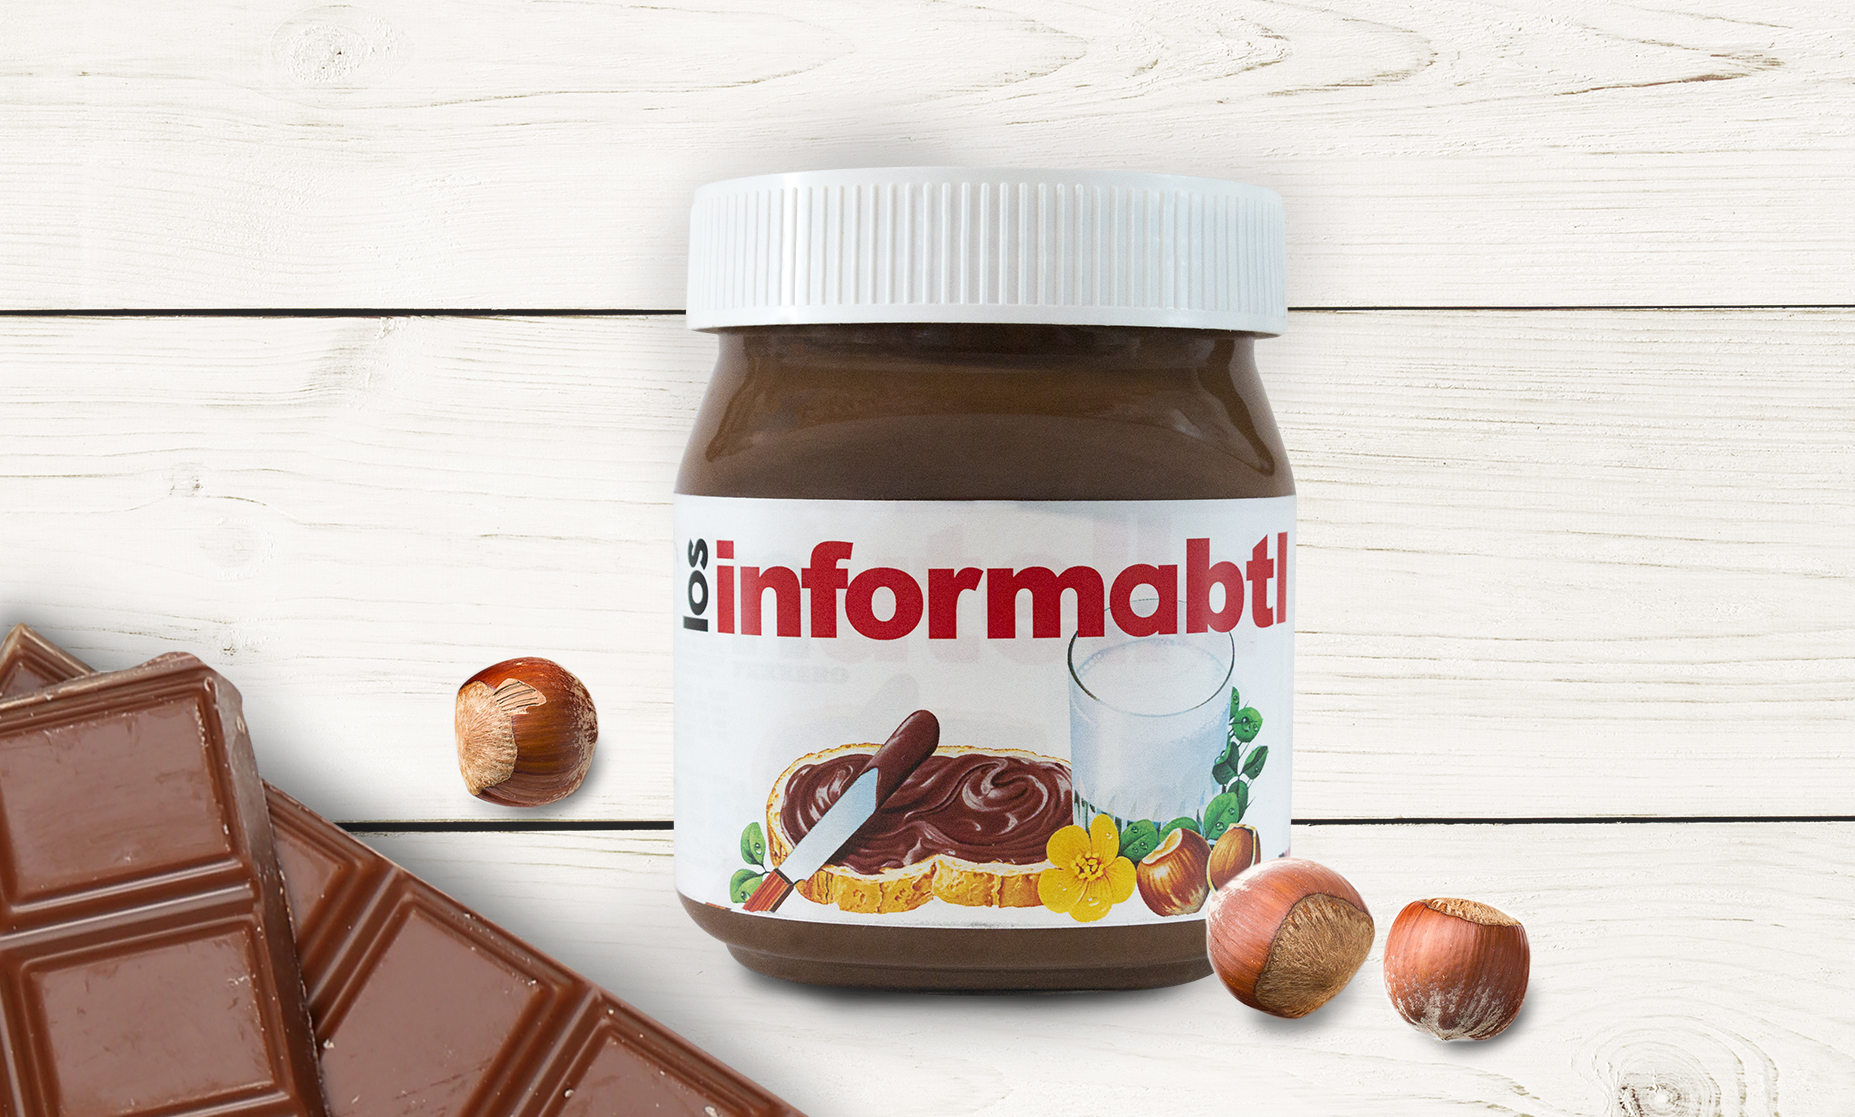 Acusan a Nutella por ingrediente que podria causar cancer